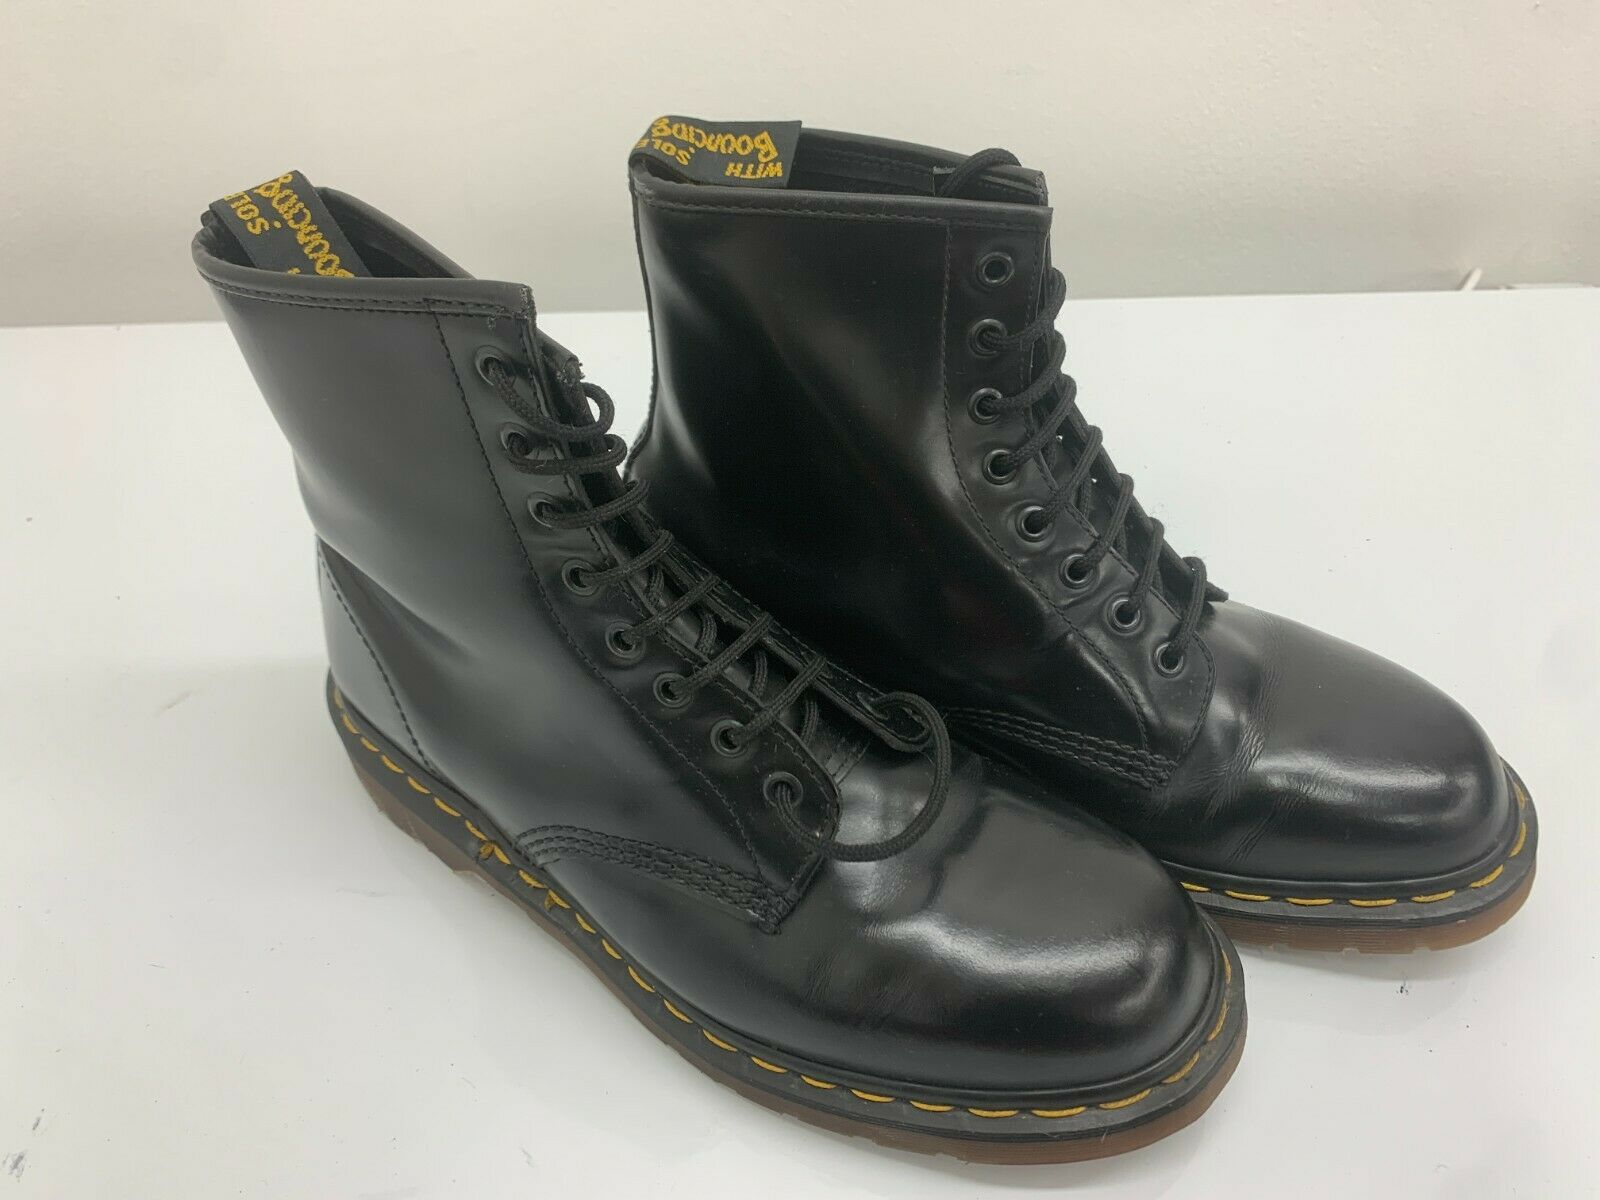 Dr Doc Martens Boots, Size 9UK, Black Shiny, 8 Eyelet, Rare Made In England